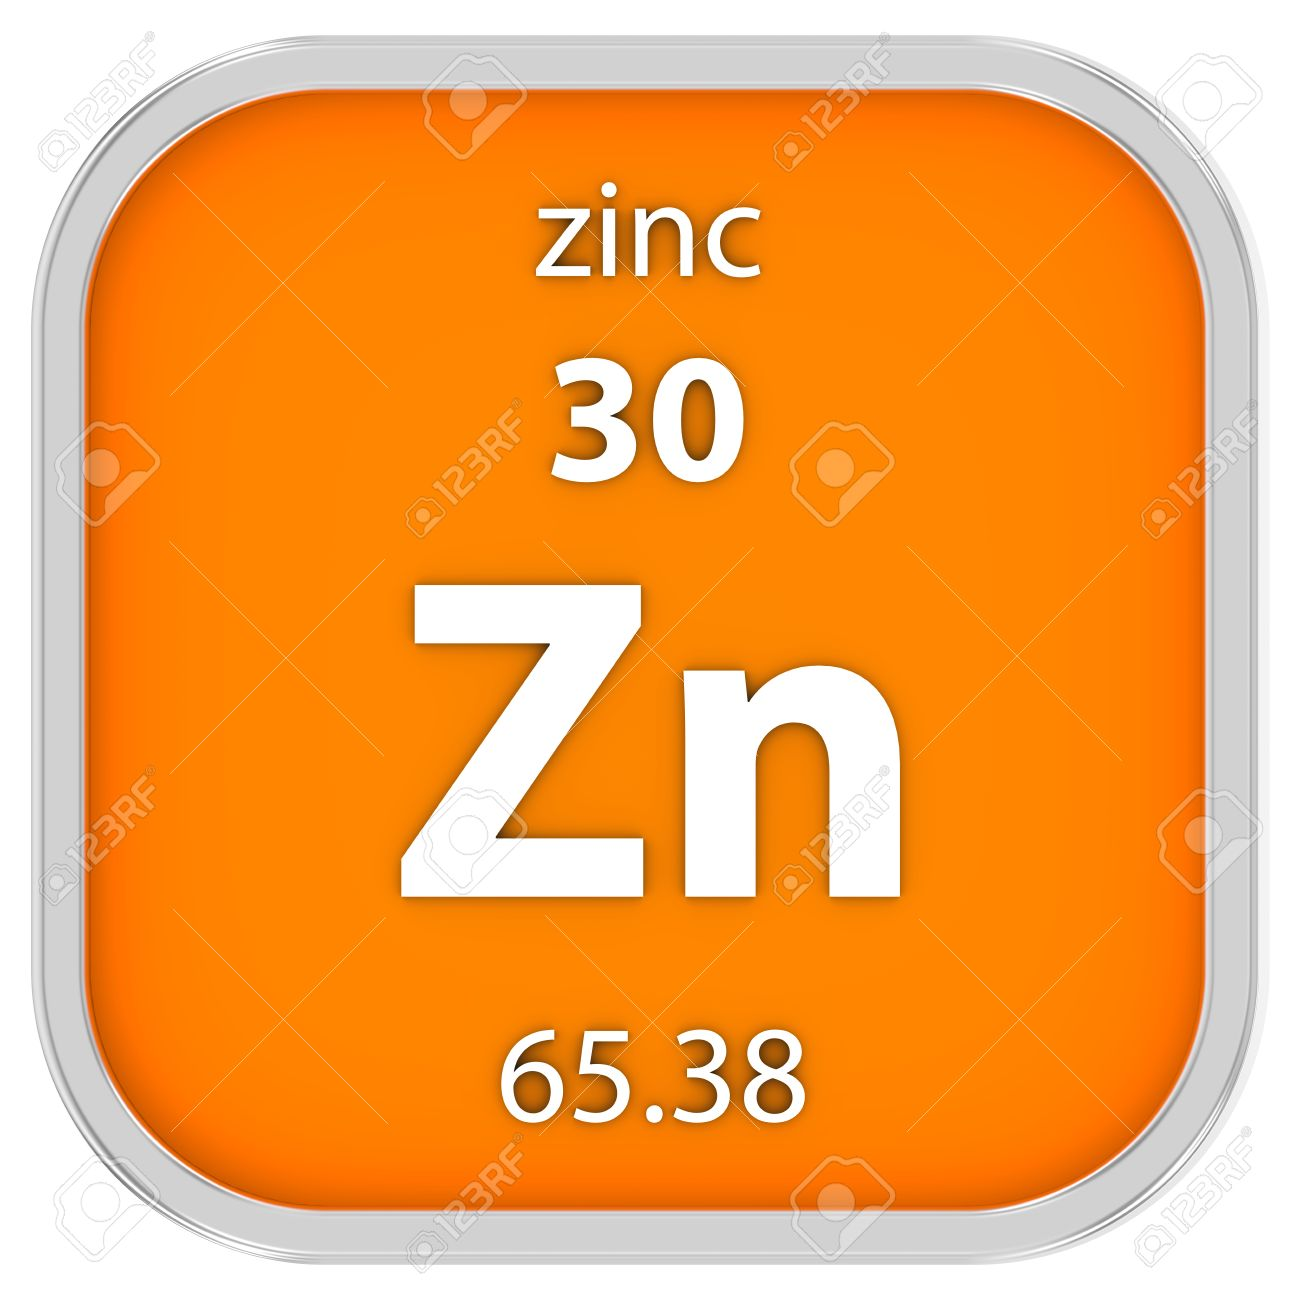 Zinc material on the periodic table part of a series stock photo zinc material on the periodic table part of a series stock photo 39444470 gamestrikefo Image collections